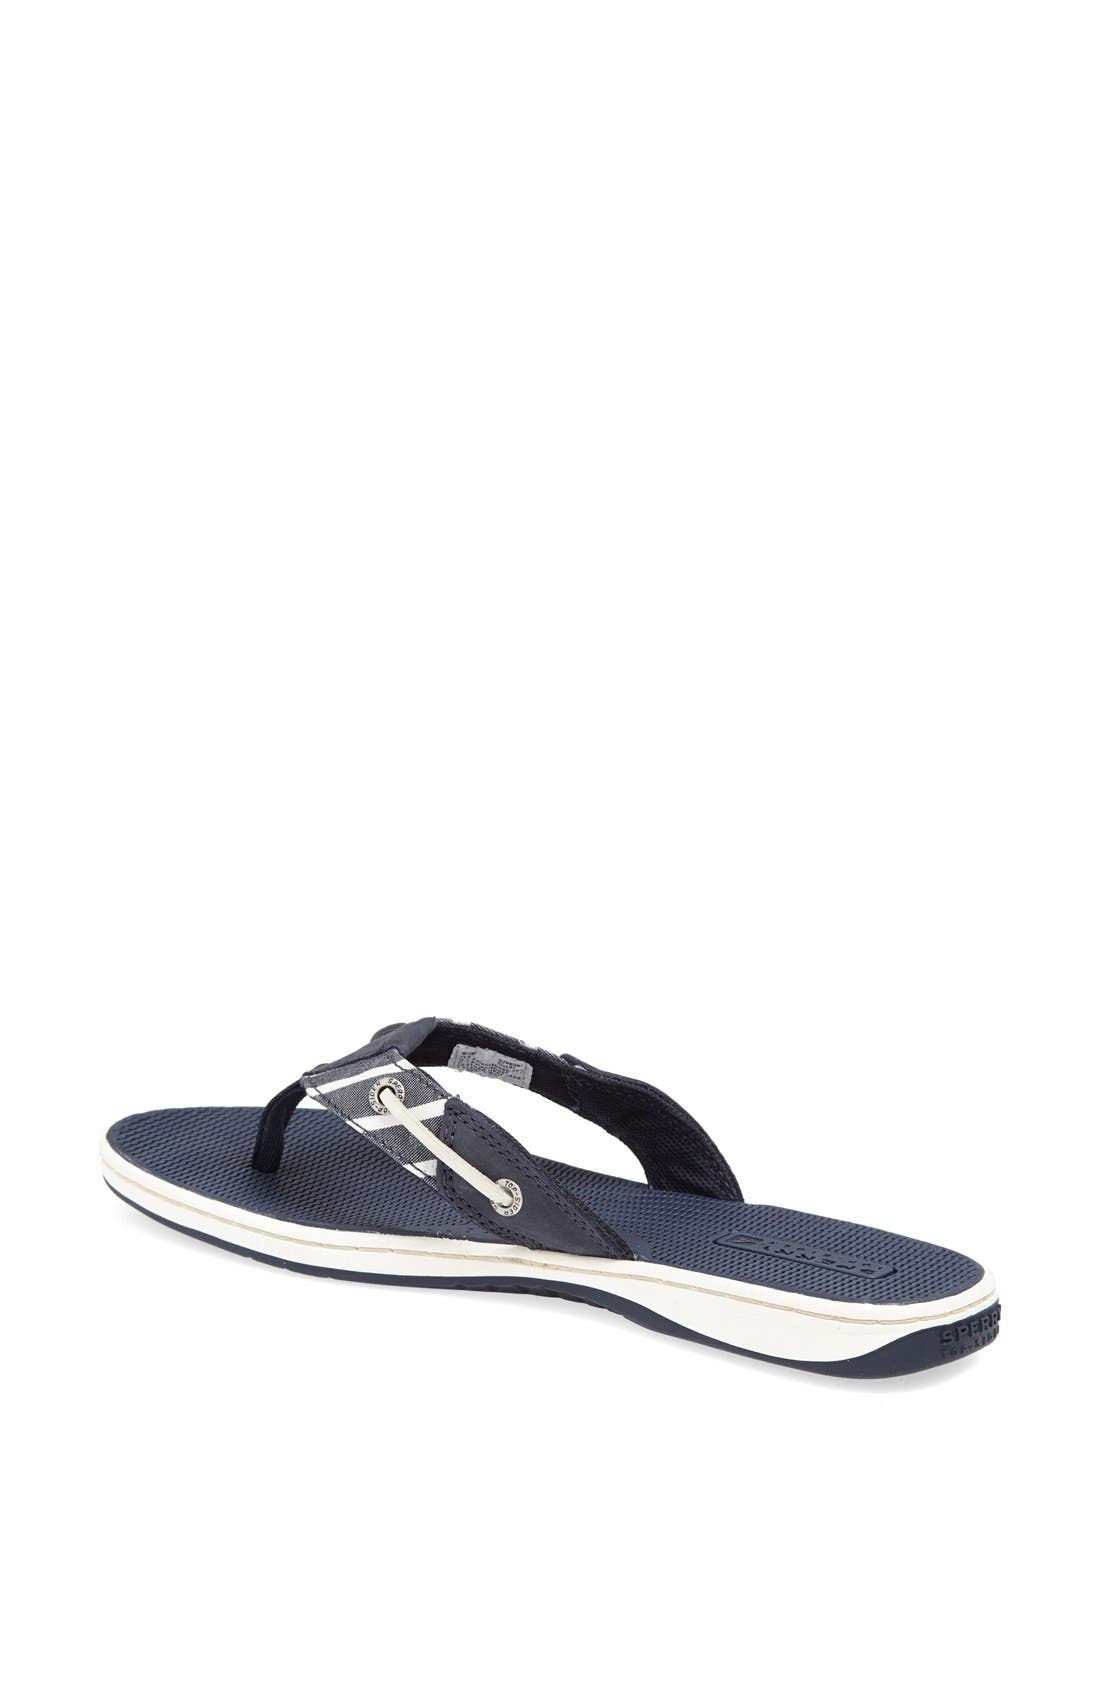 Alternate Image 2  - Sperry 'Seafish' Flip Flop